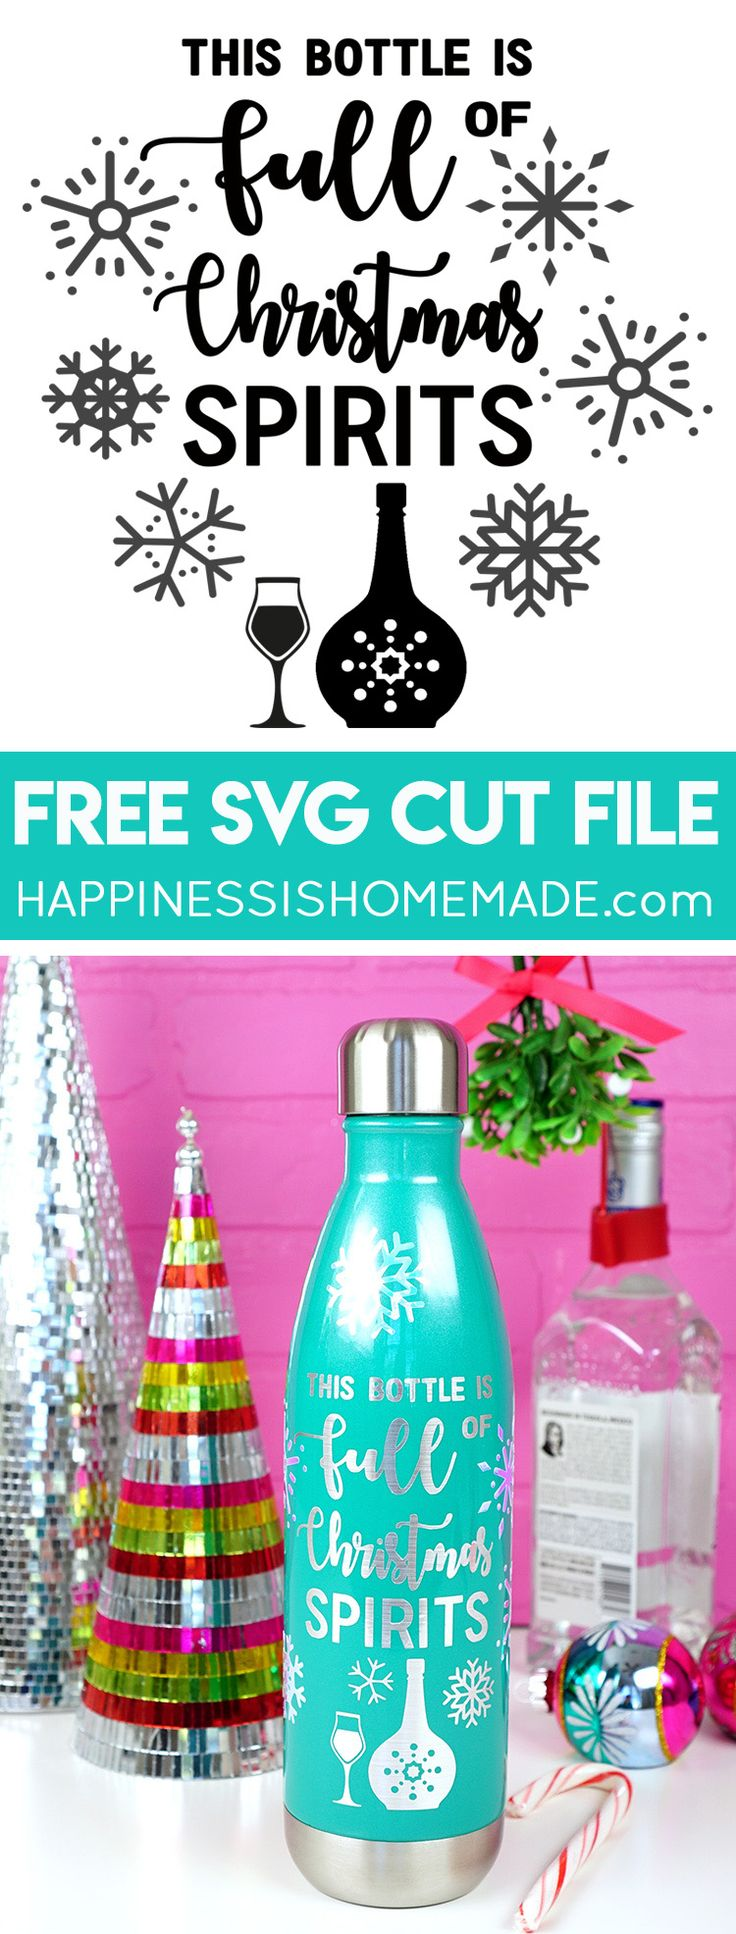 "Raise a toast to Christmas cheer with this Free SVG File - ""This Bottle is Full of Christmas Spirits!"" Great gift idea for hostesses, friends, and neighbors!"